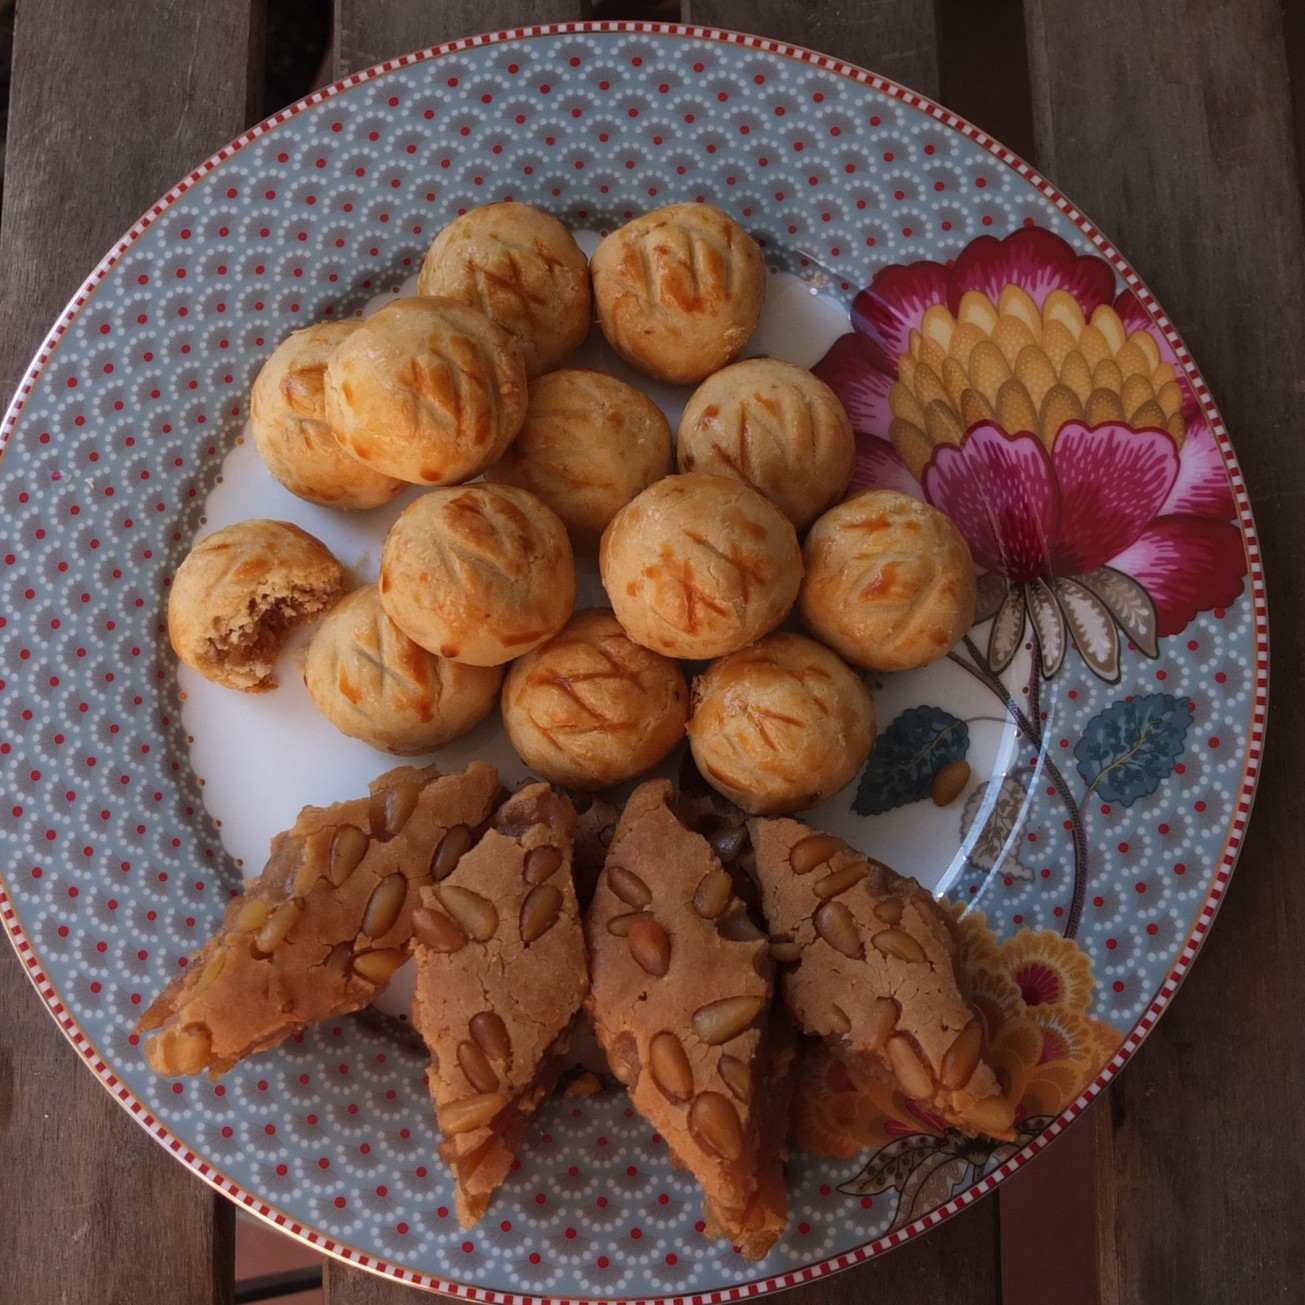 Healthier baked niangao sticky rice cake and glutenfree healthier pineapple tarts